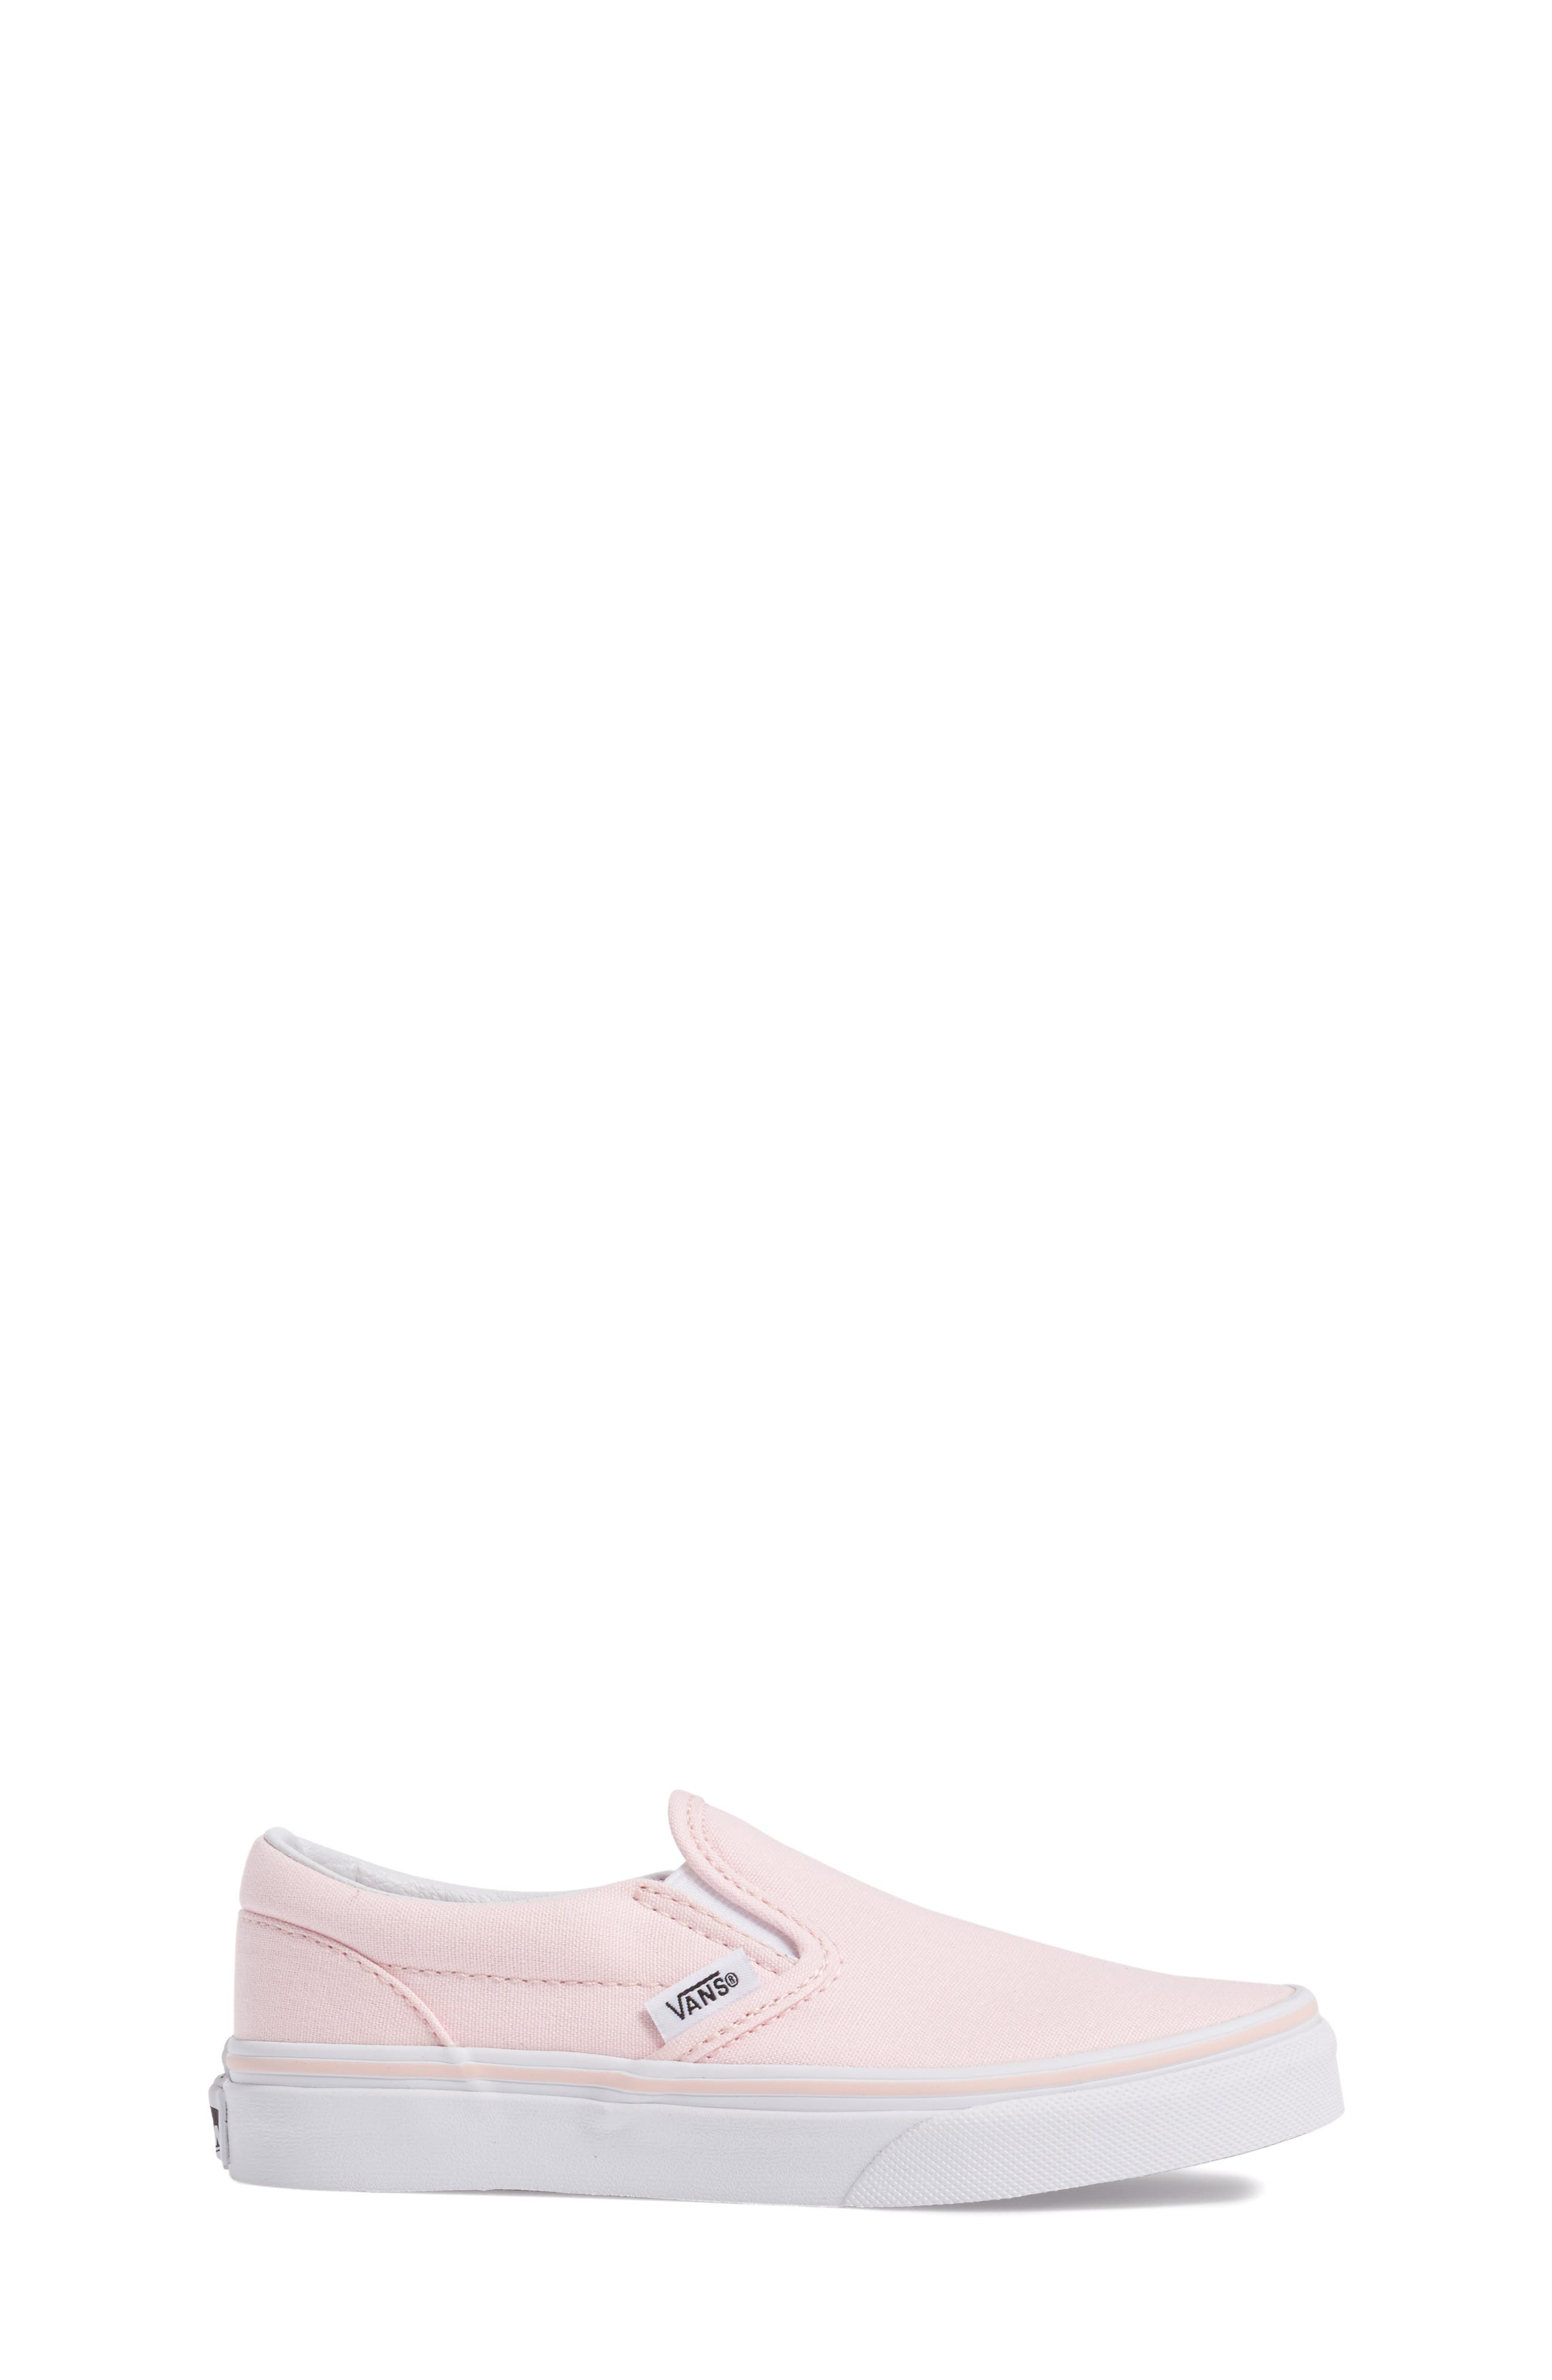 Classic Slip-On Sneaker,                             Alternate thumbnail 3, color,                             Ballerina/ True White